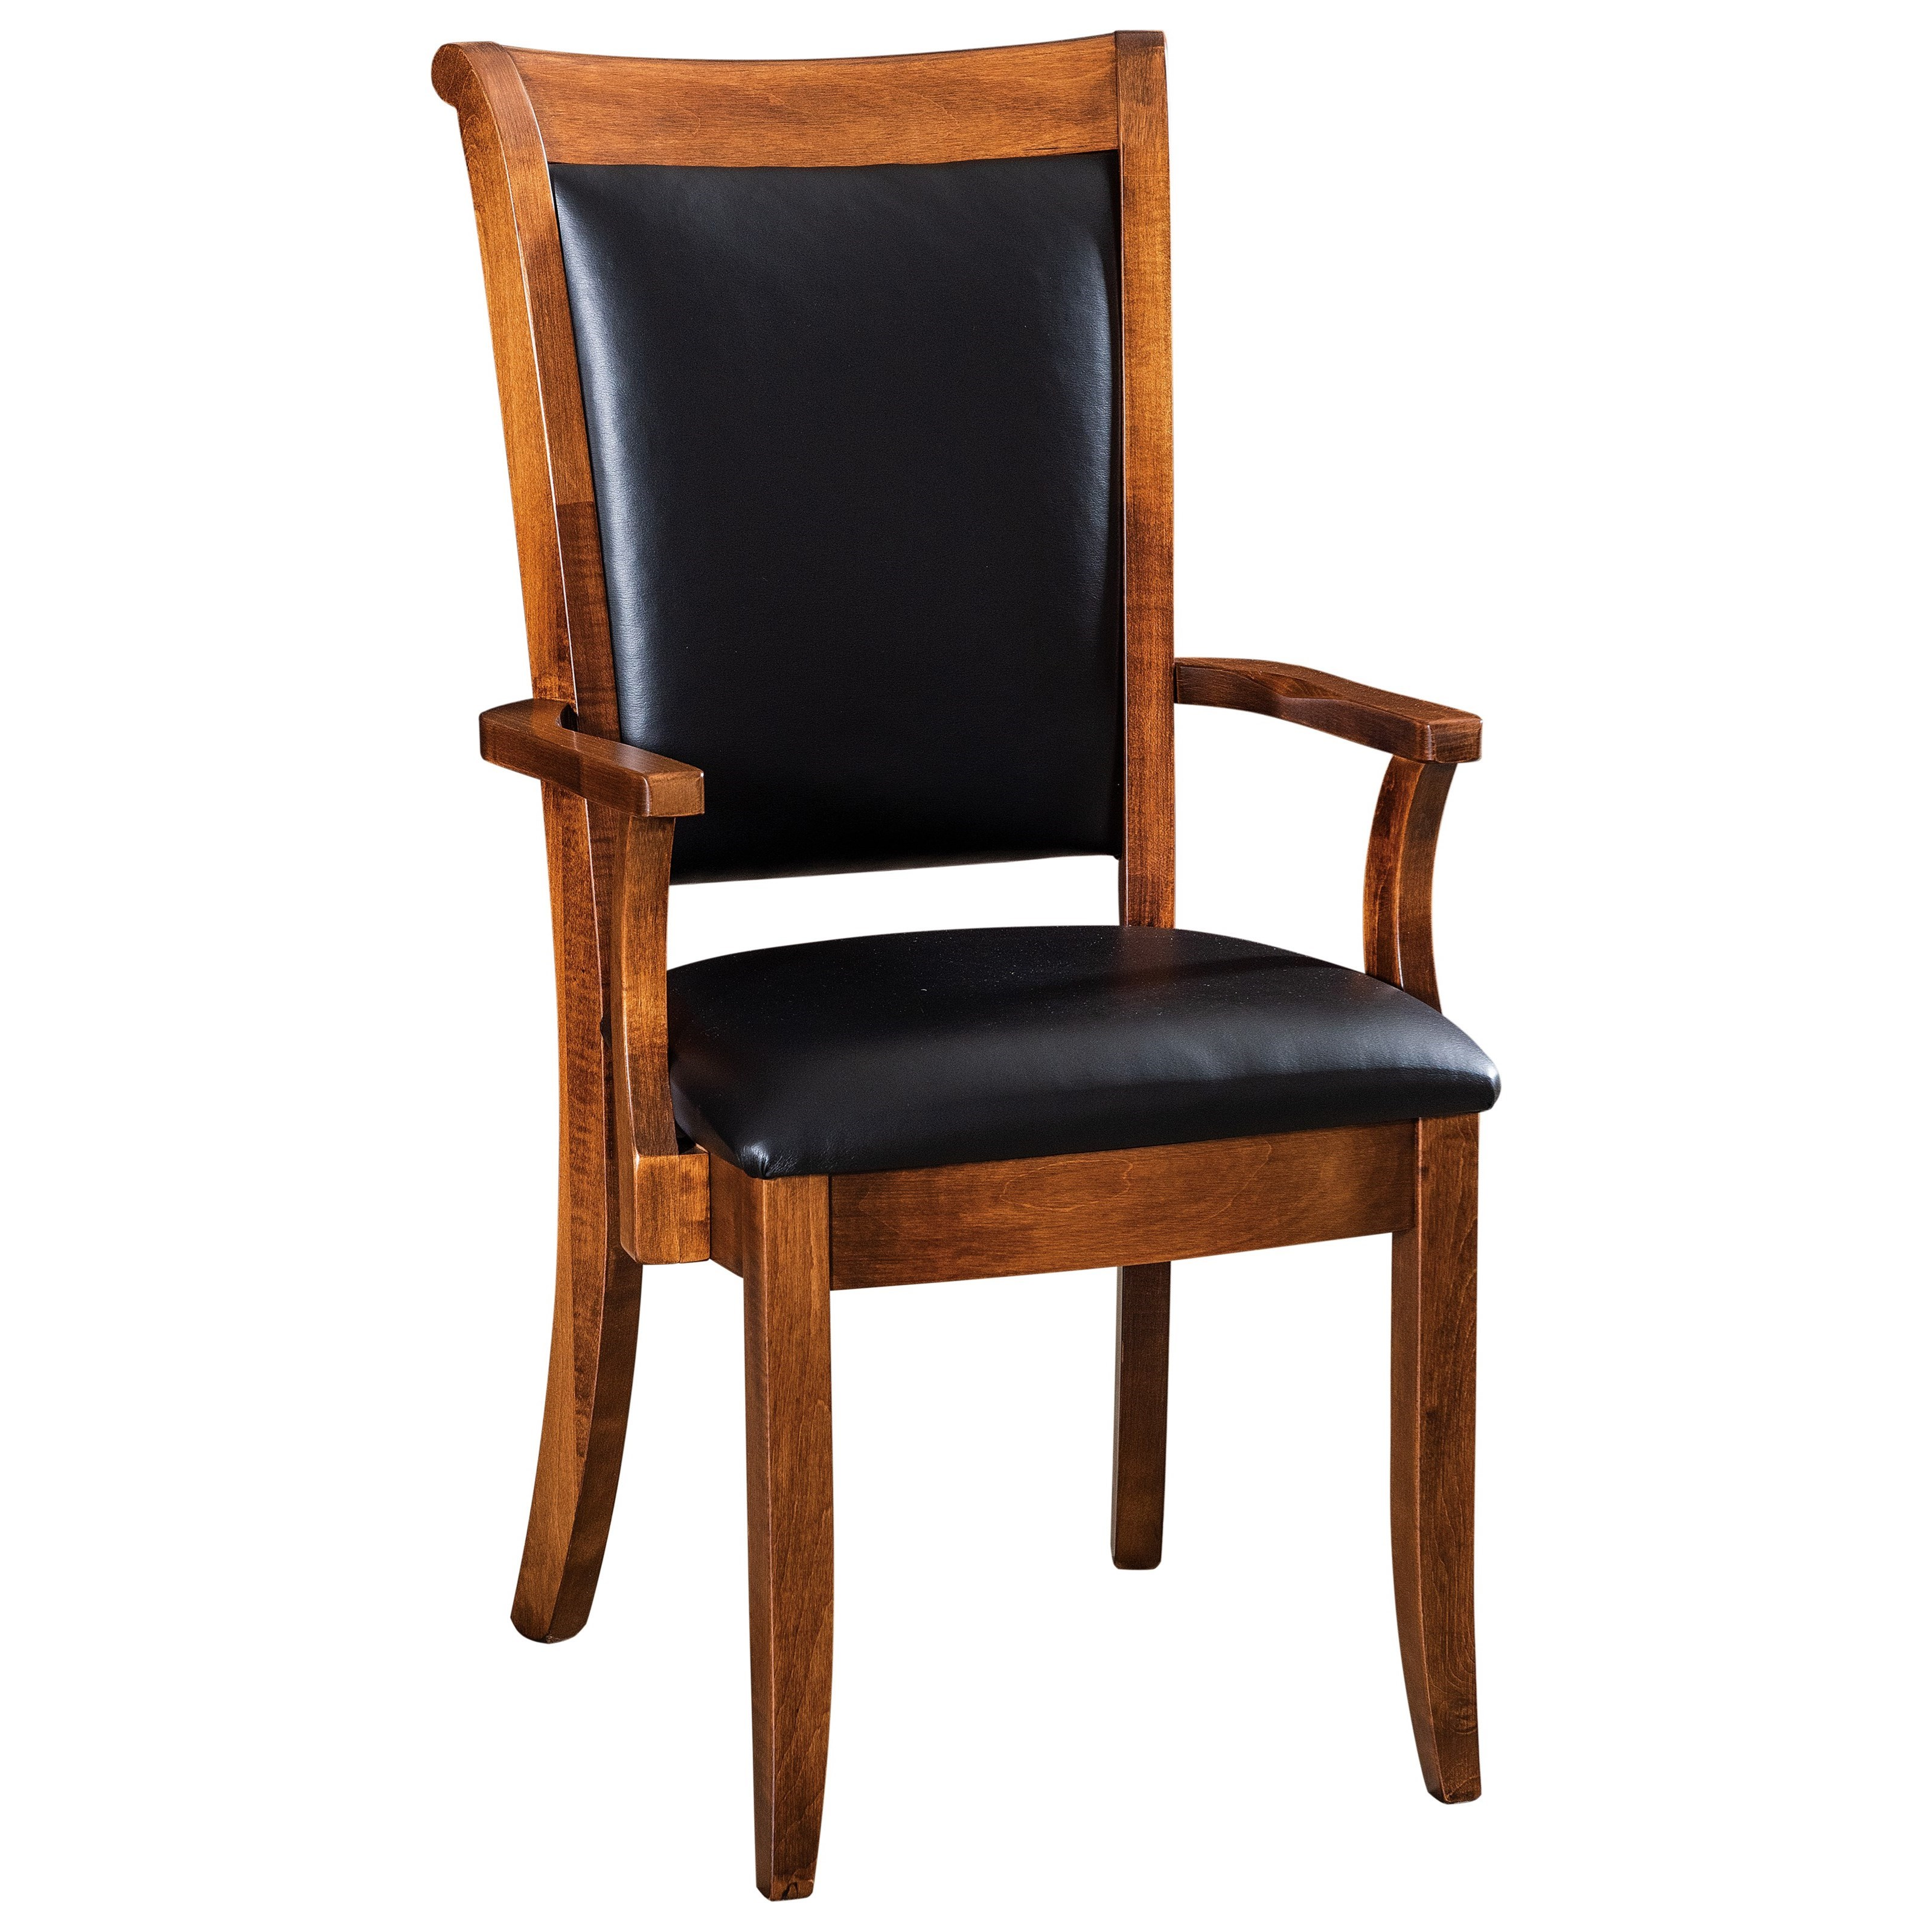 Kimberly Customizable Solid Wood Dining Arm Chair by F&N Woodworking at Saugerties Furniture Mart